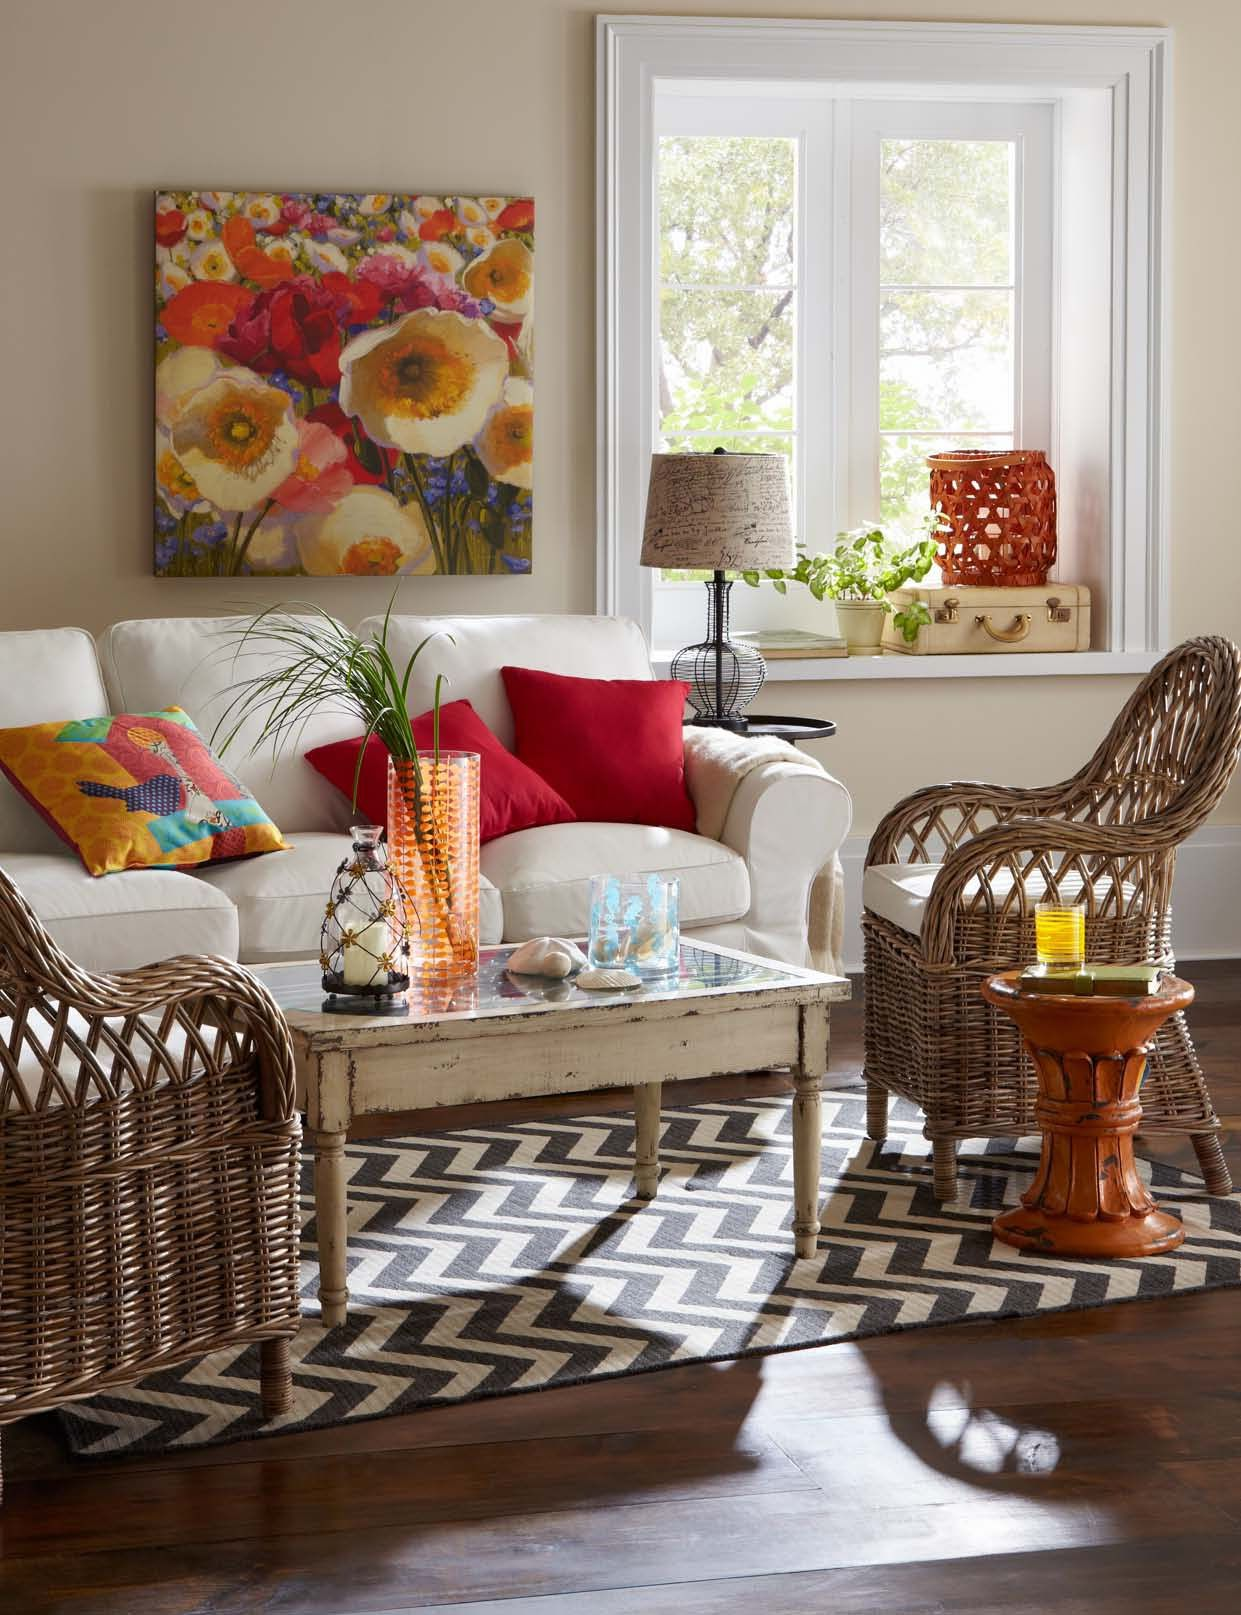 Wake up your room by adding color through accents. Hang artwork that you love and pull colors from it as you select pillows, throws and florals. Anchoring a rug under furniture pieces ties a room together. Shop this room!